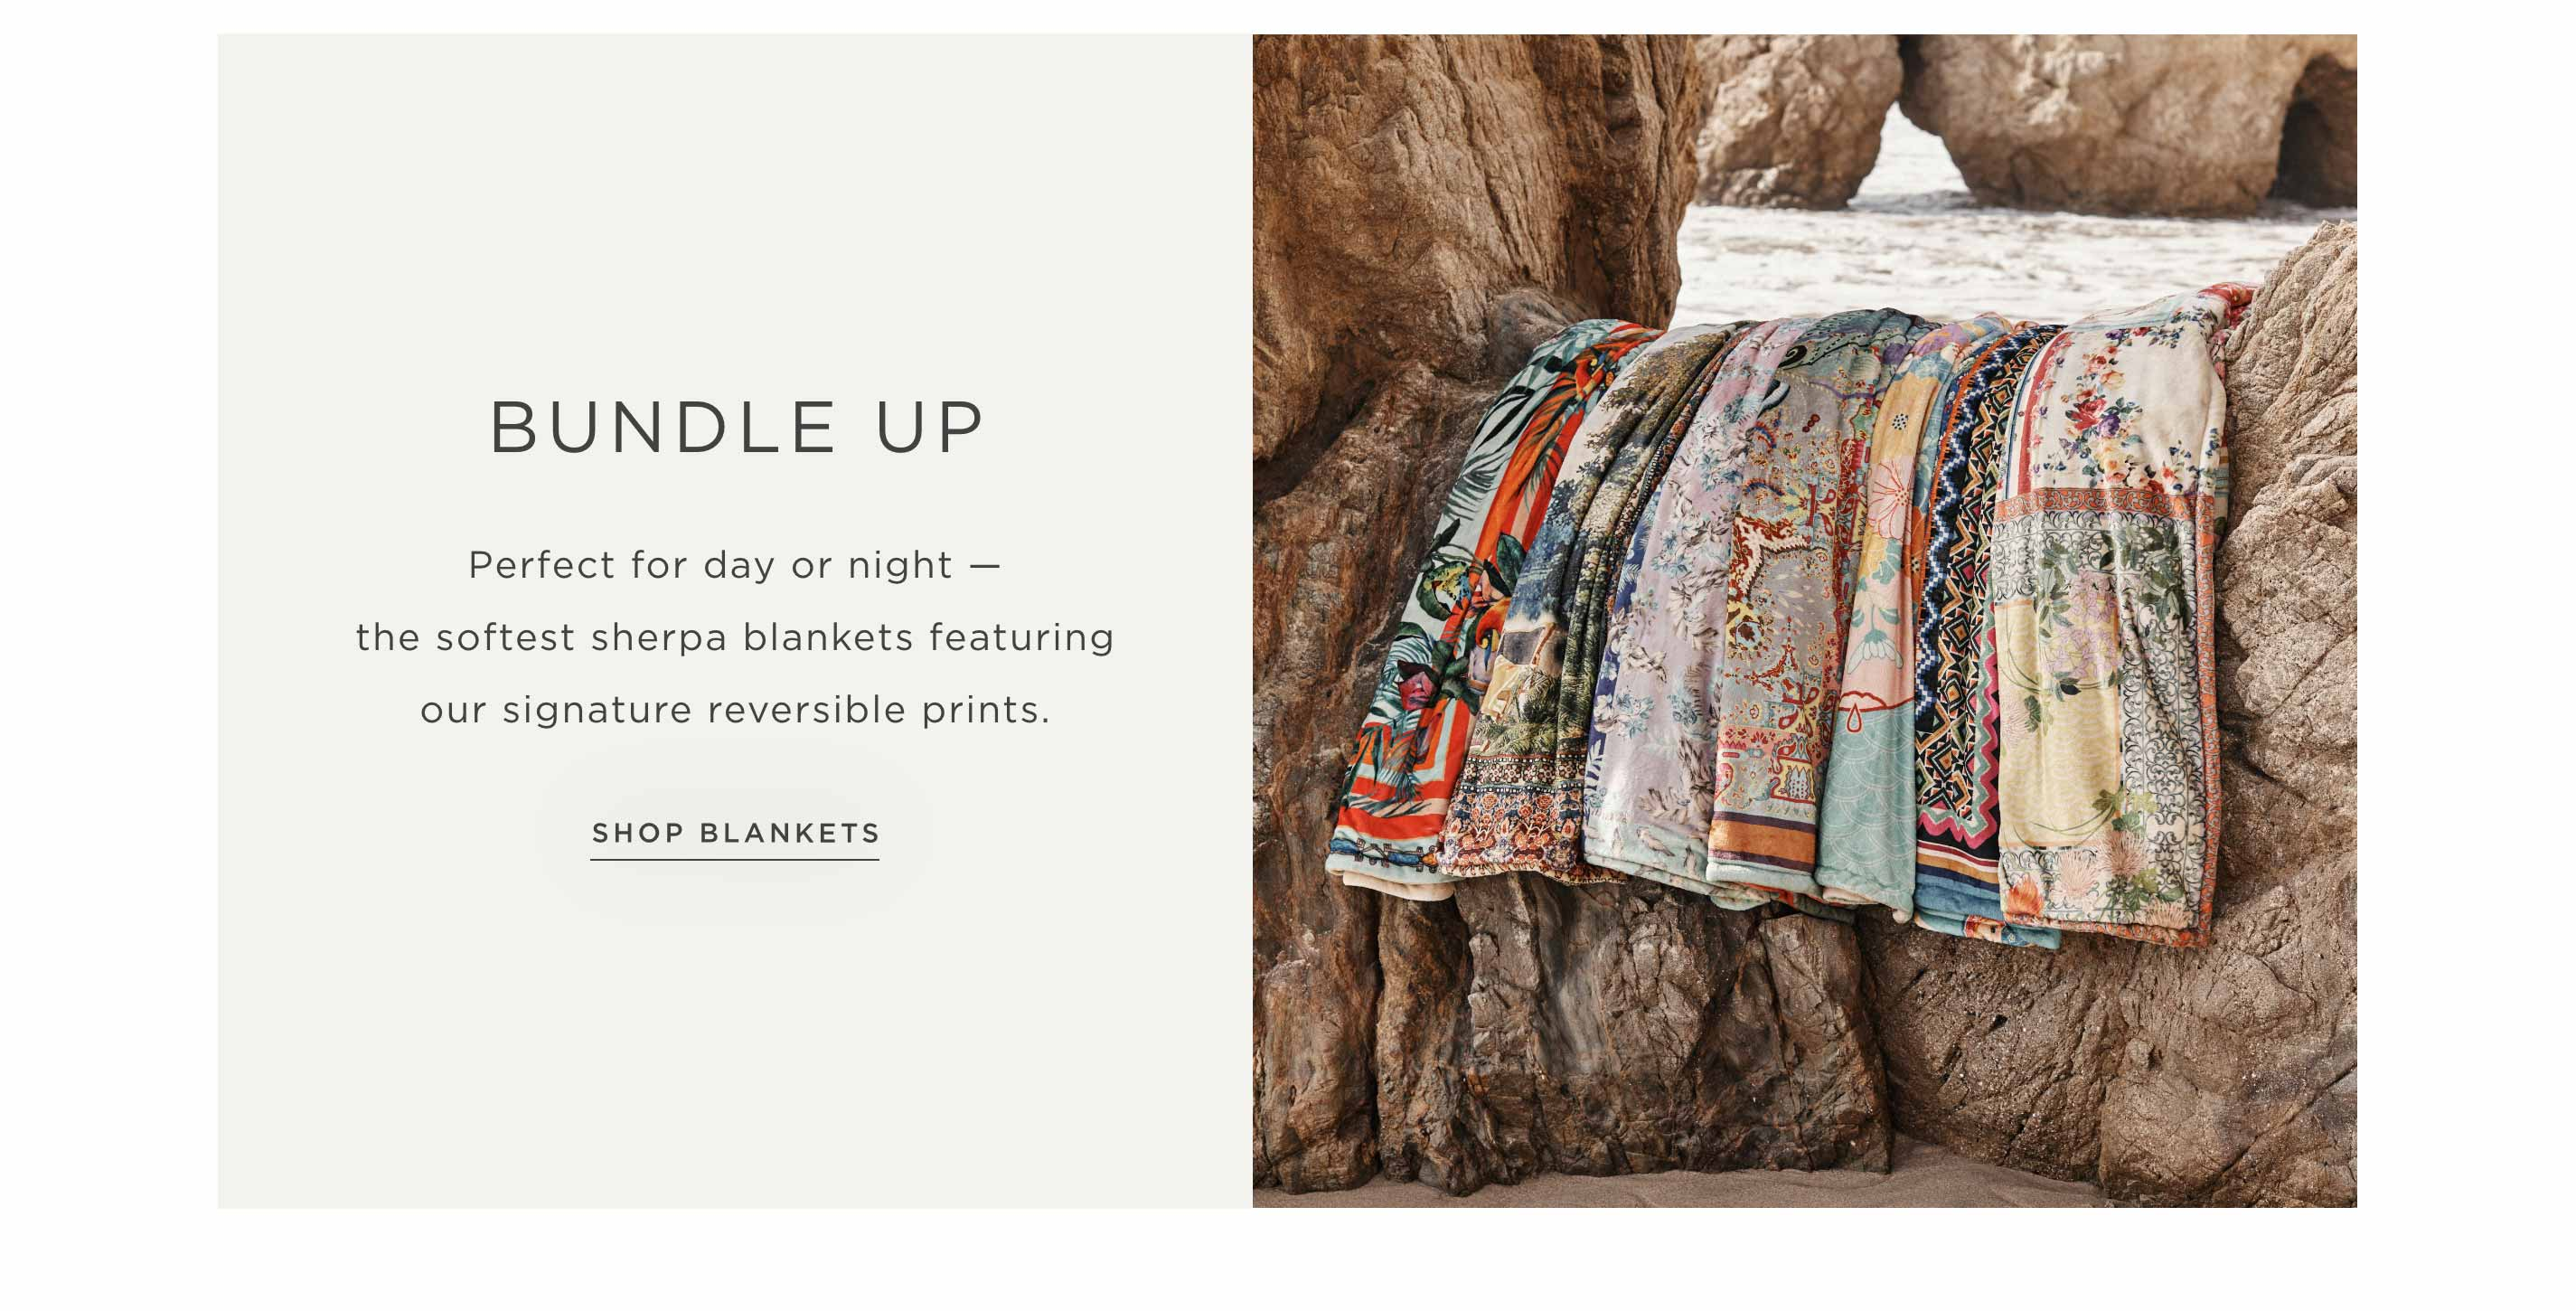 Bundle Up - Perfect for day or night — the softest sherpa blankets featuring our signature reversible prints - Shop Blankets